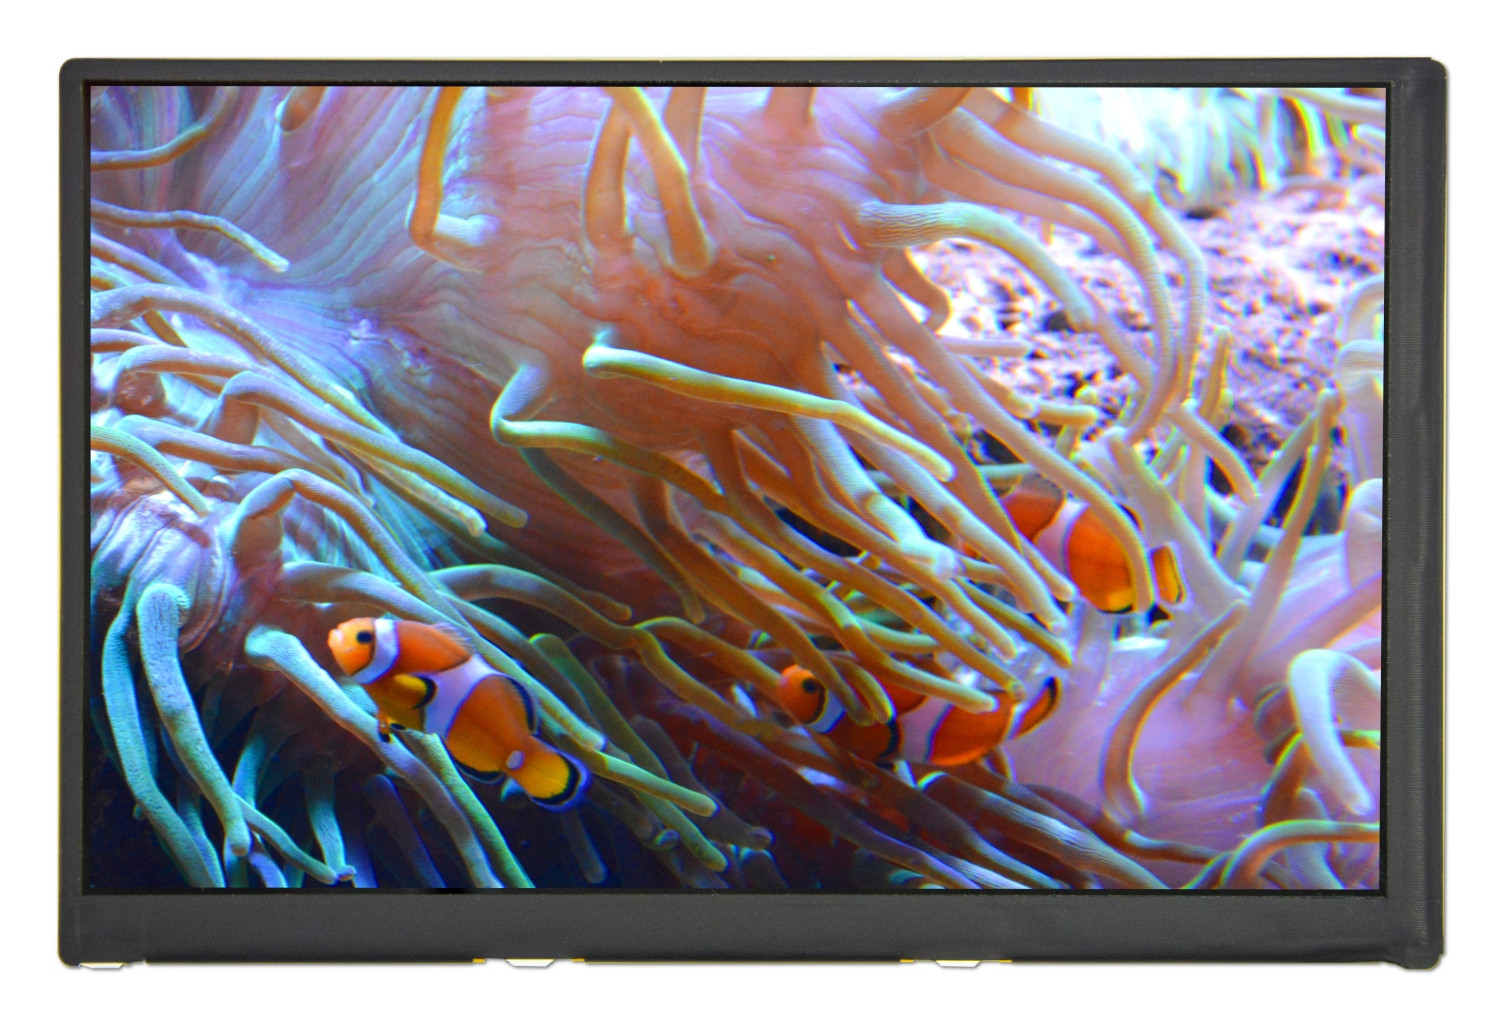 DLF0702-TNN-A01 - LCD-TFT display from Litemax Co. (7 inches, 1280x800, no controller, LED inverter)